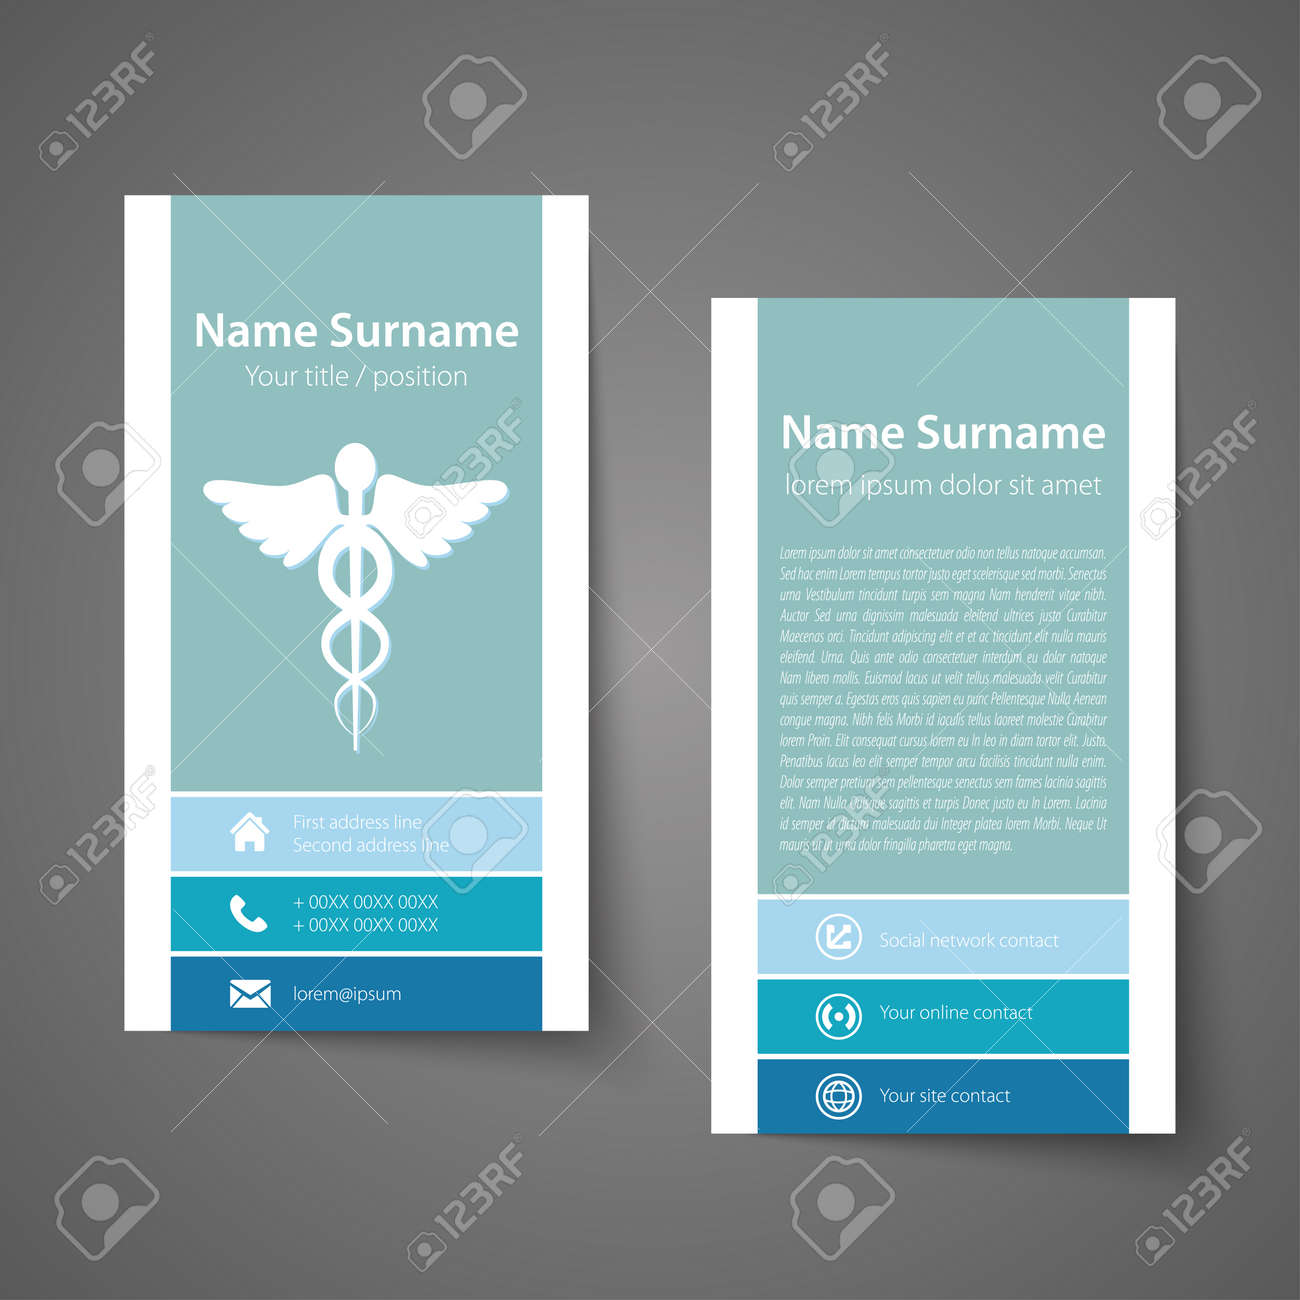 Modern Simple Business Card Template For Physicians. Vector Format ...